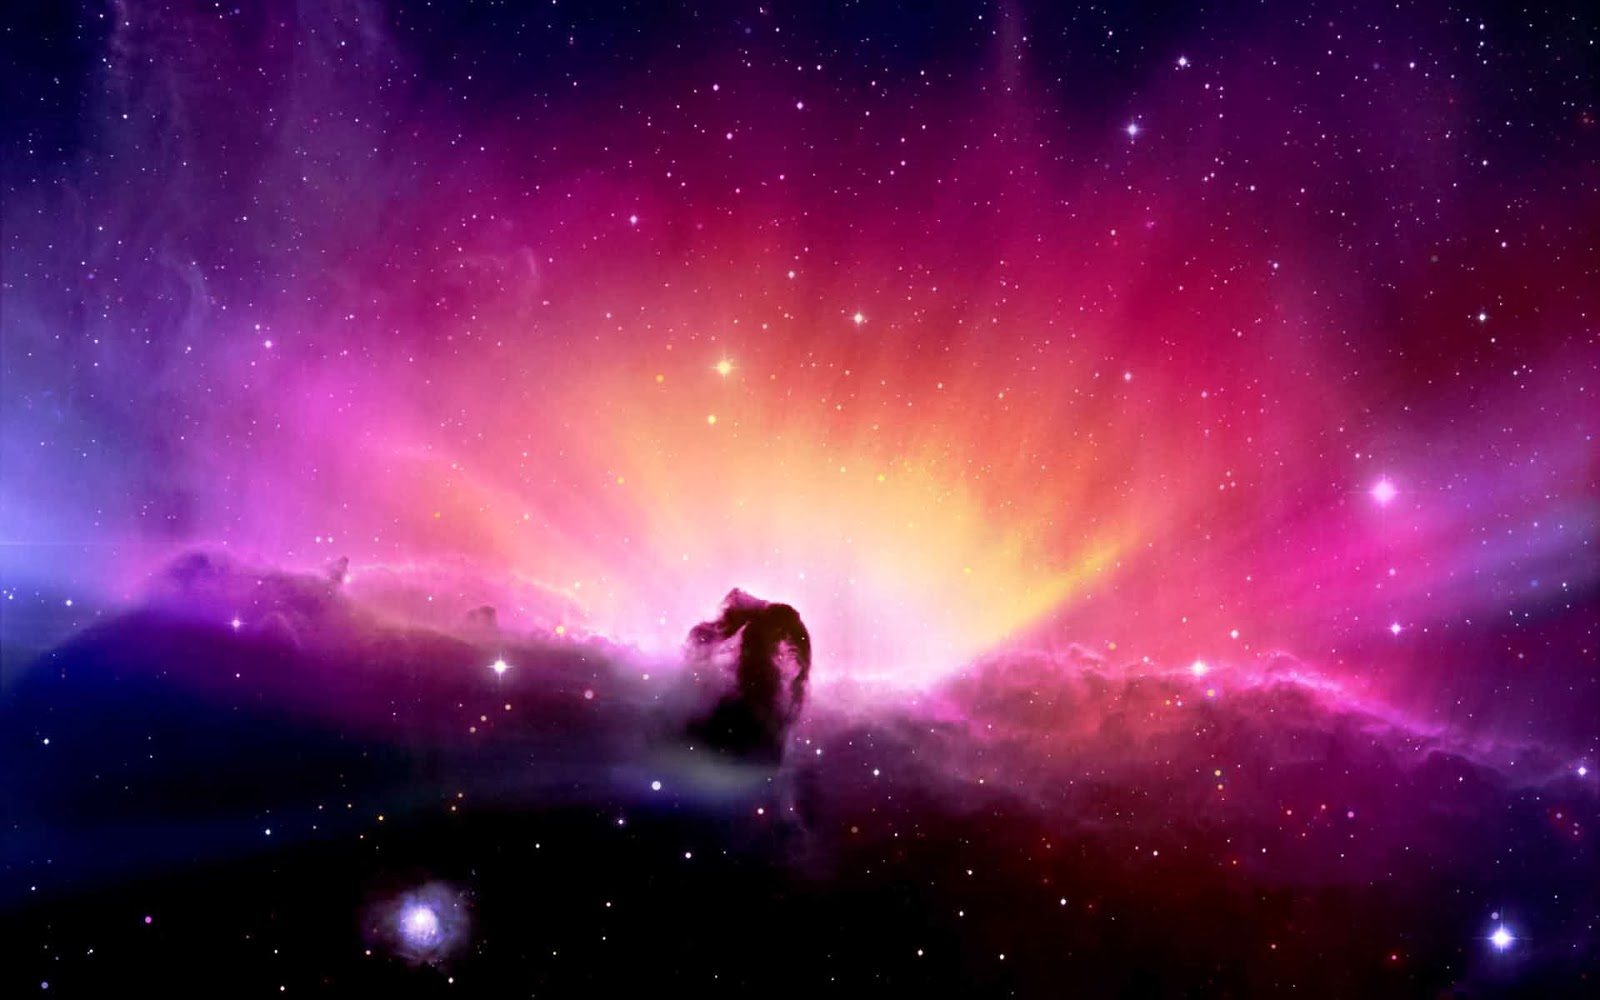 HD Wallpapers: Horsehead Nebula Wallpapers